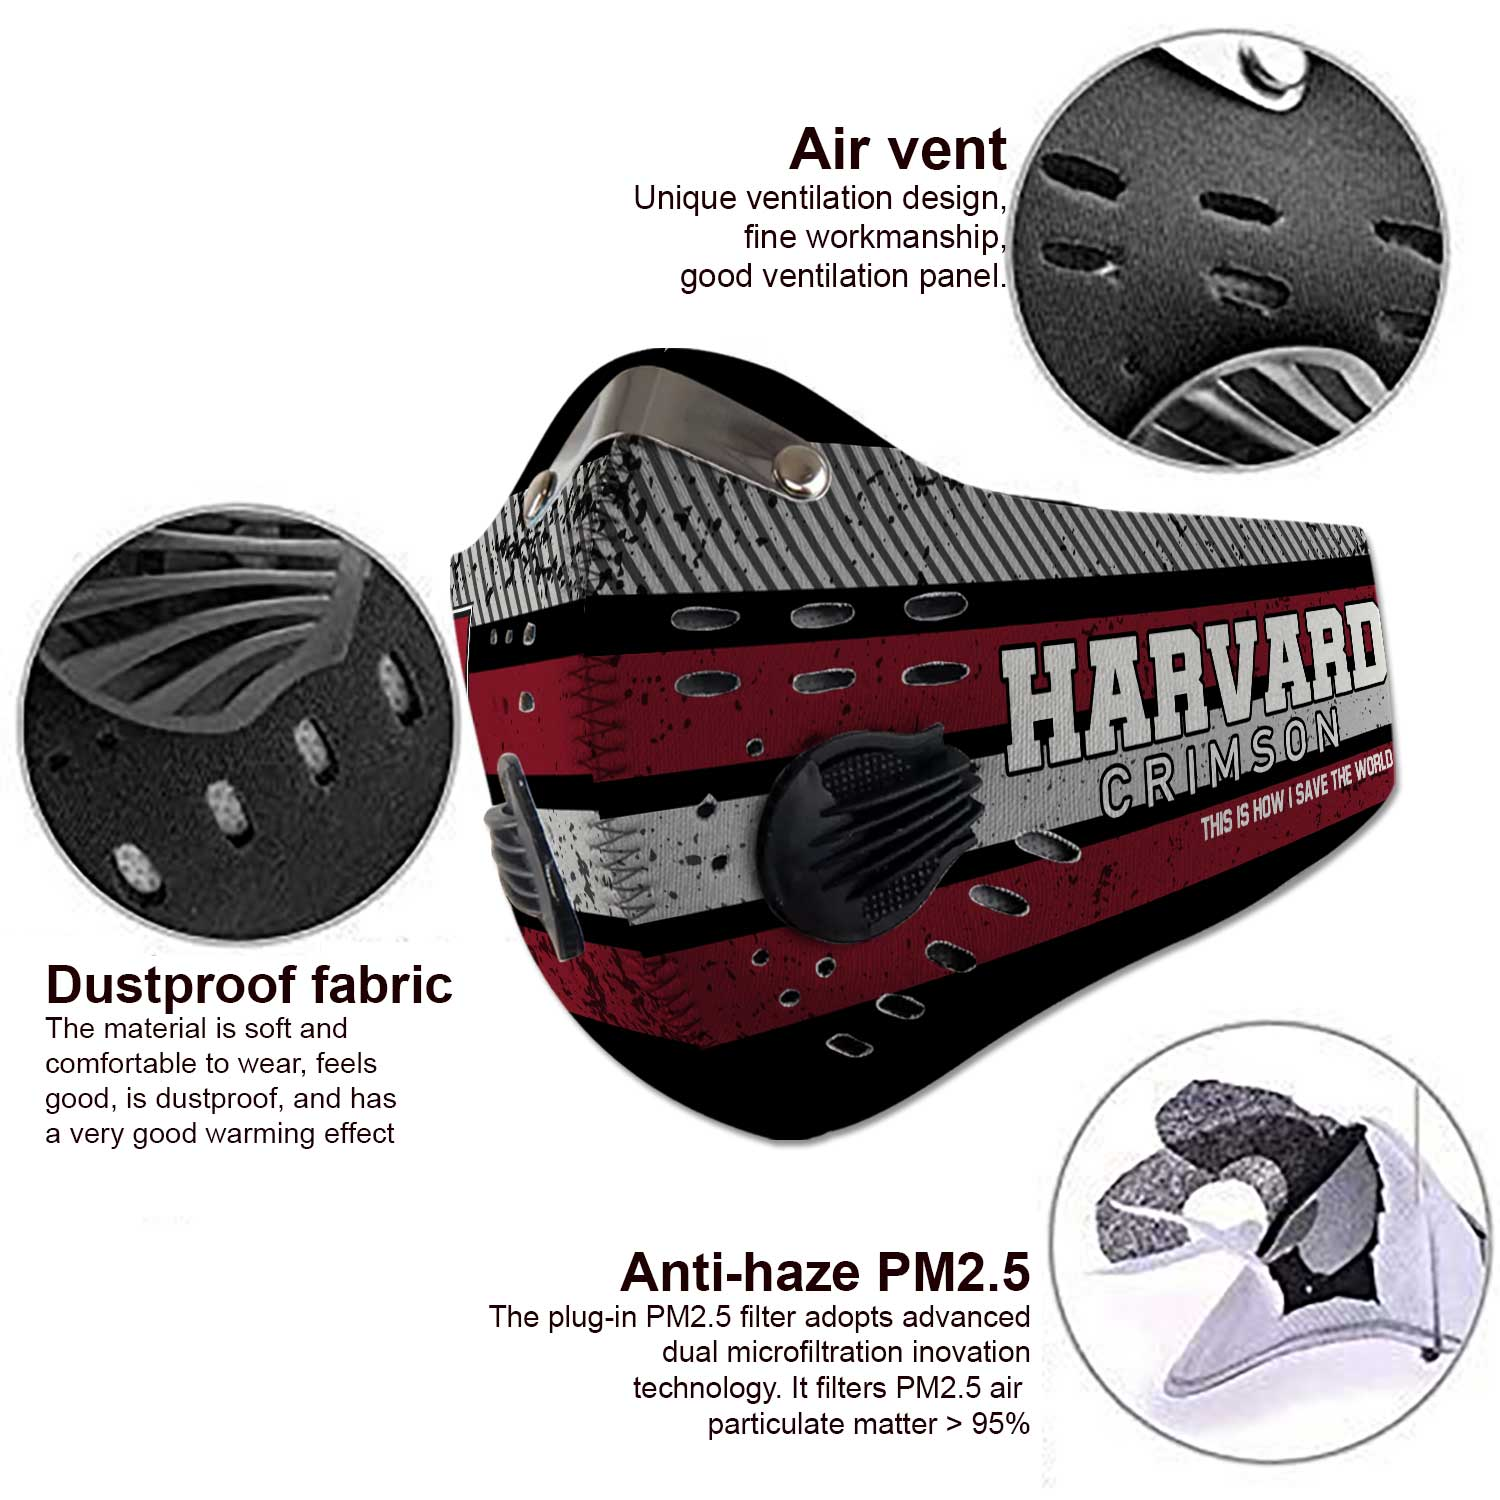 Harvard crimson this is how i save the world carbon filter face mask 4